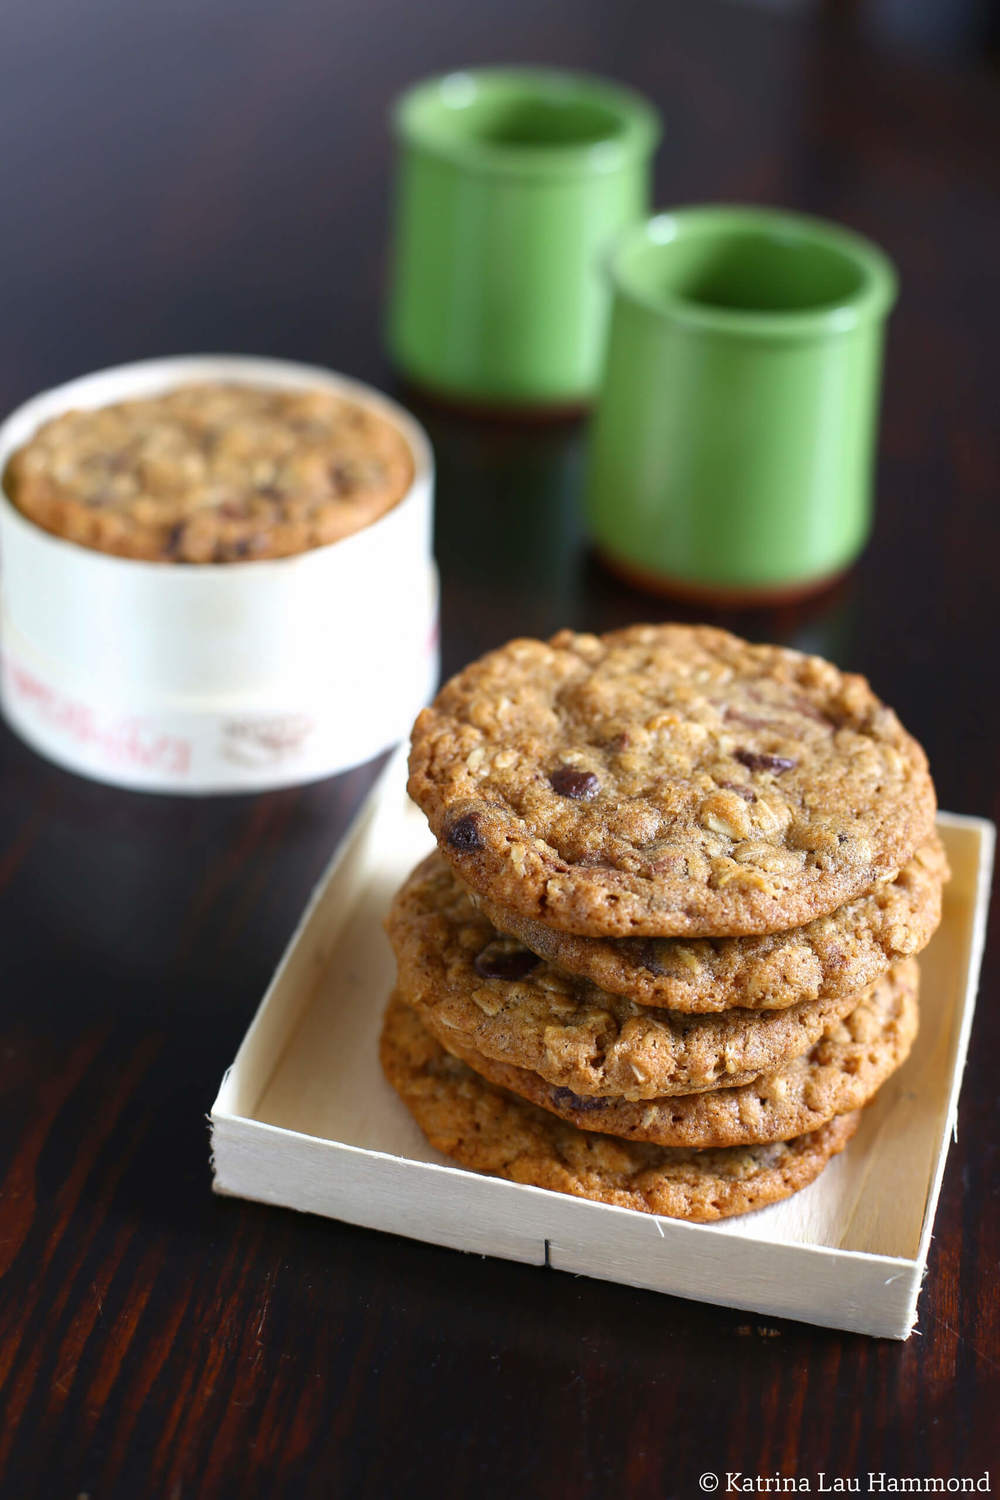 Oat choc chip cookies